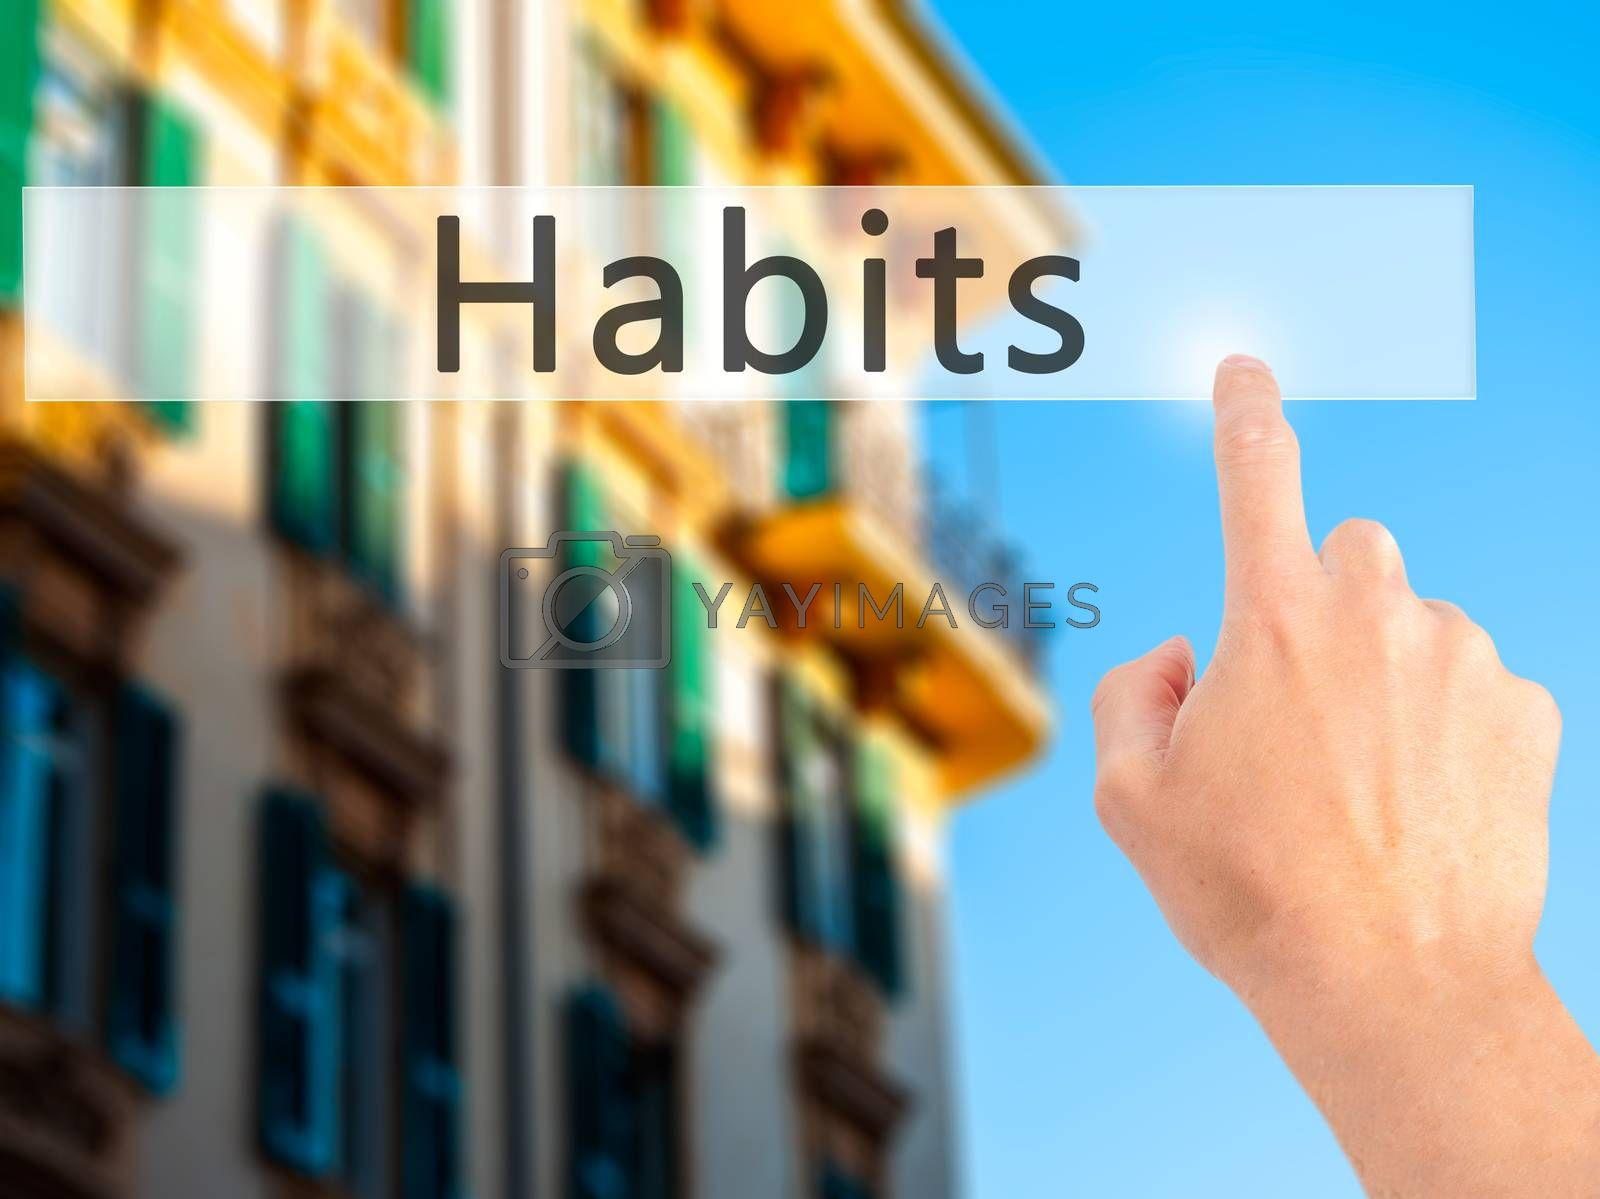 Habits - Hand pressing a button on blurred background concept on by jackald